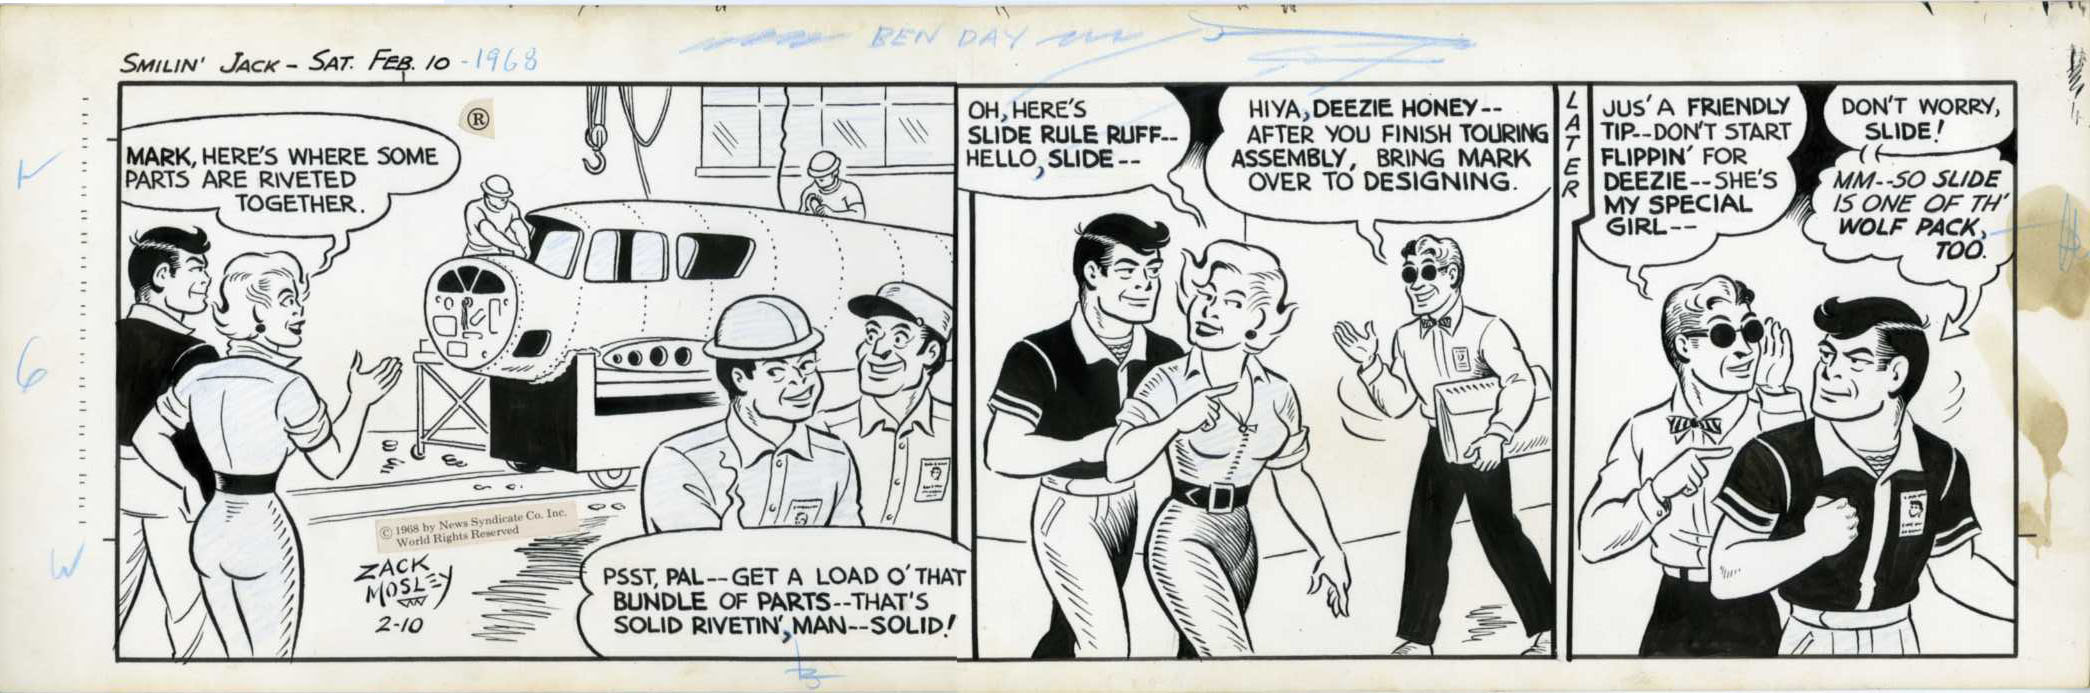 ZACK MOSLEY - SMILIN' JACK DAILY STRIP ORIG ART 2-10-68 SLIDE RULE RUFF